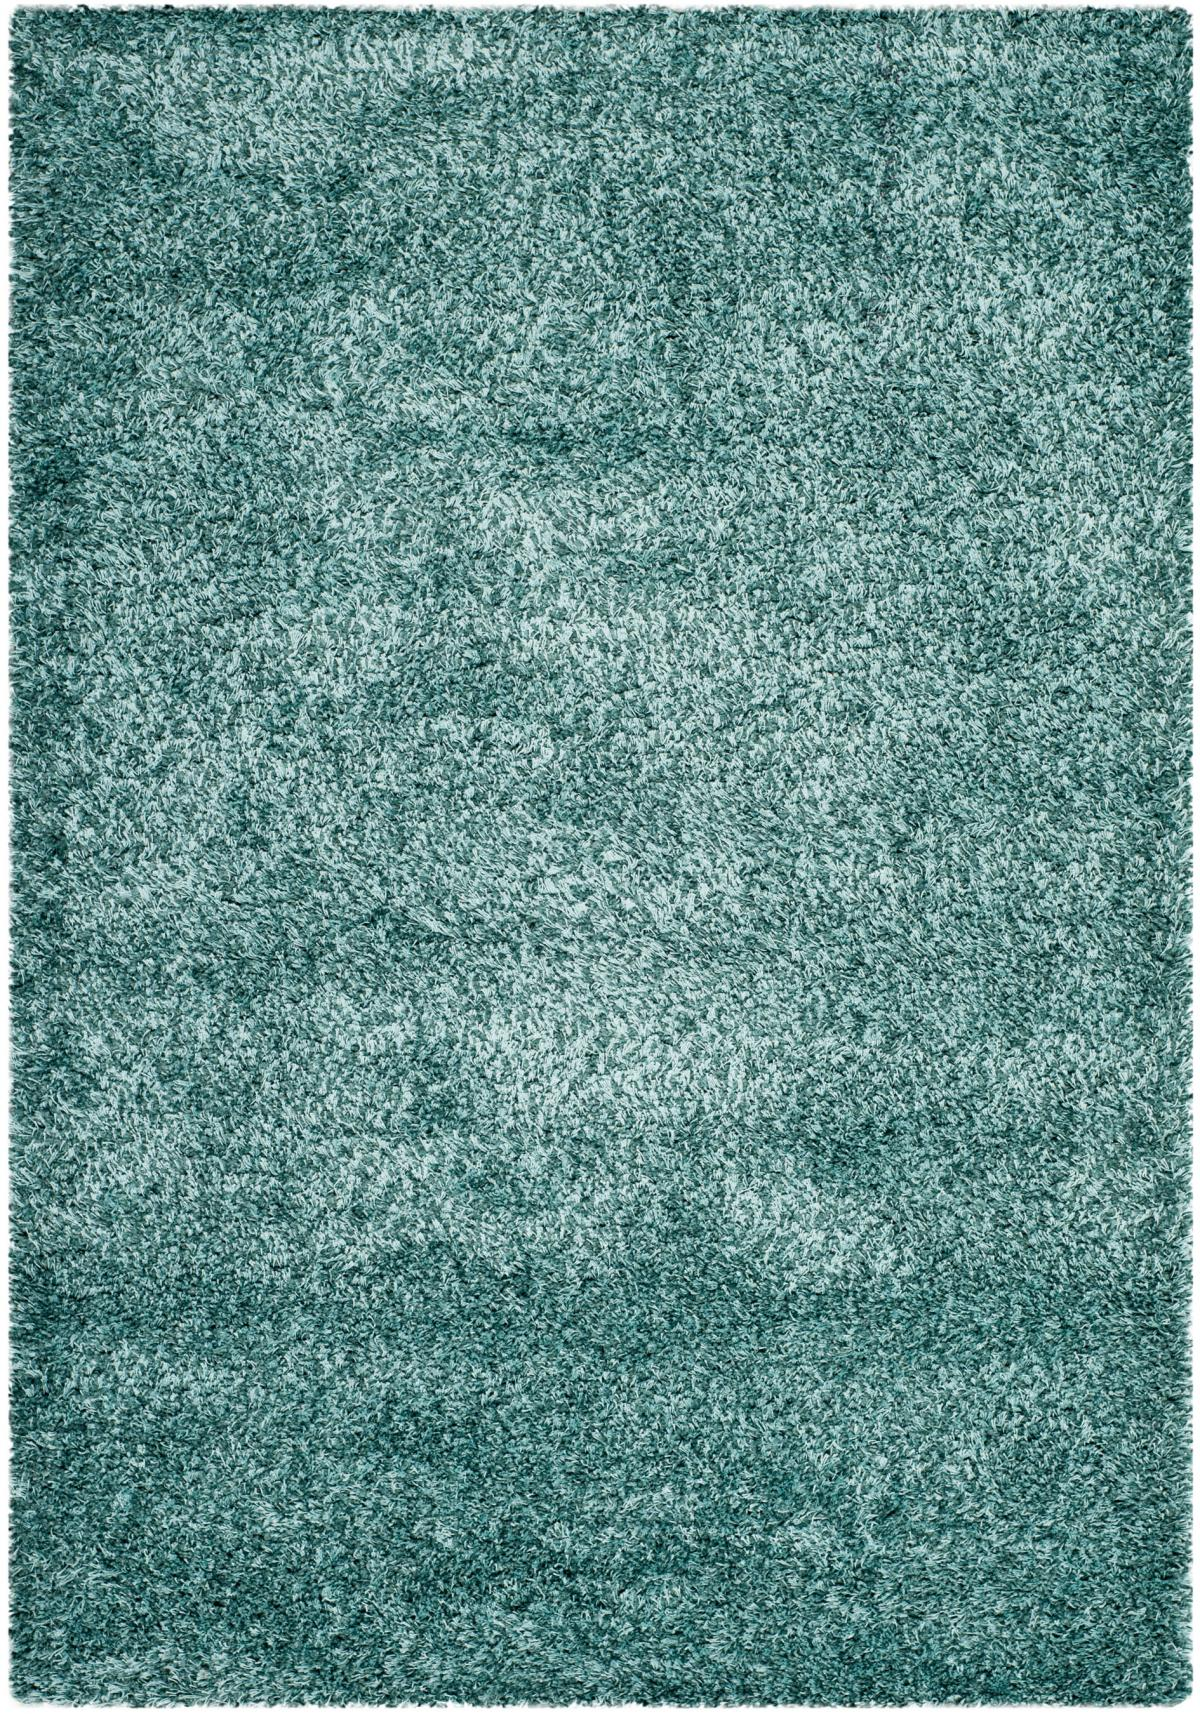 Rug Sg165 5858 New York Shag New York Shag Shag Area Rugs By Safavieh